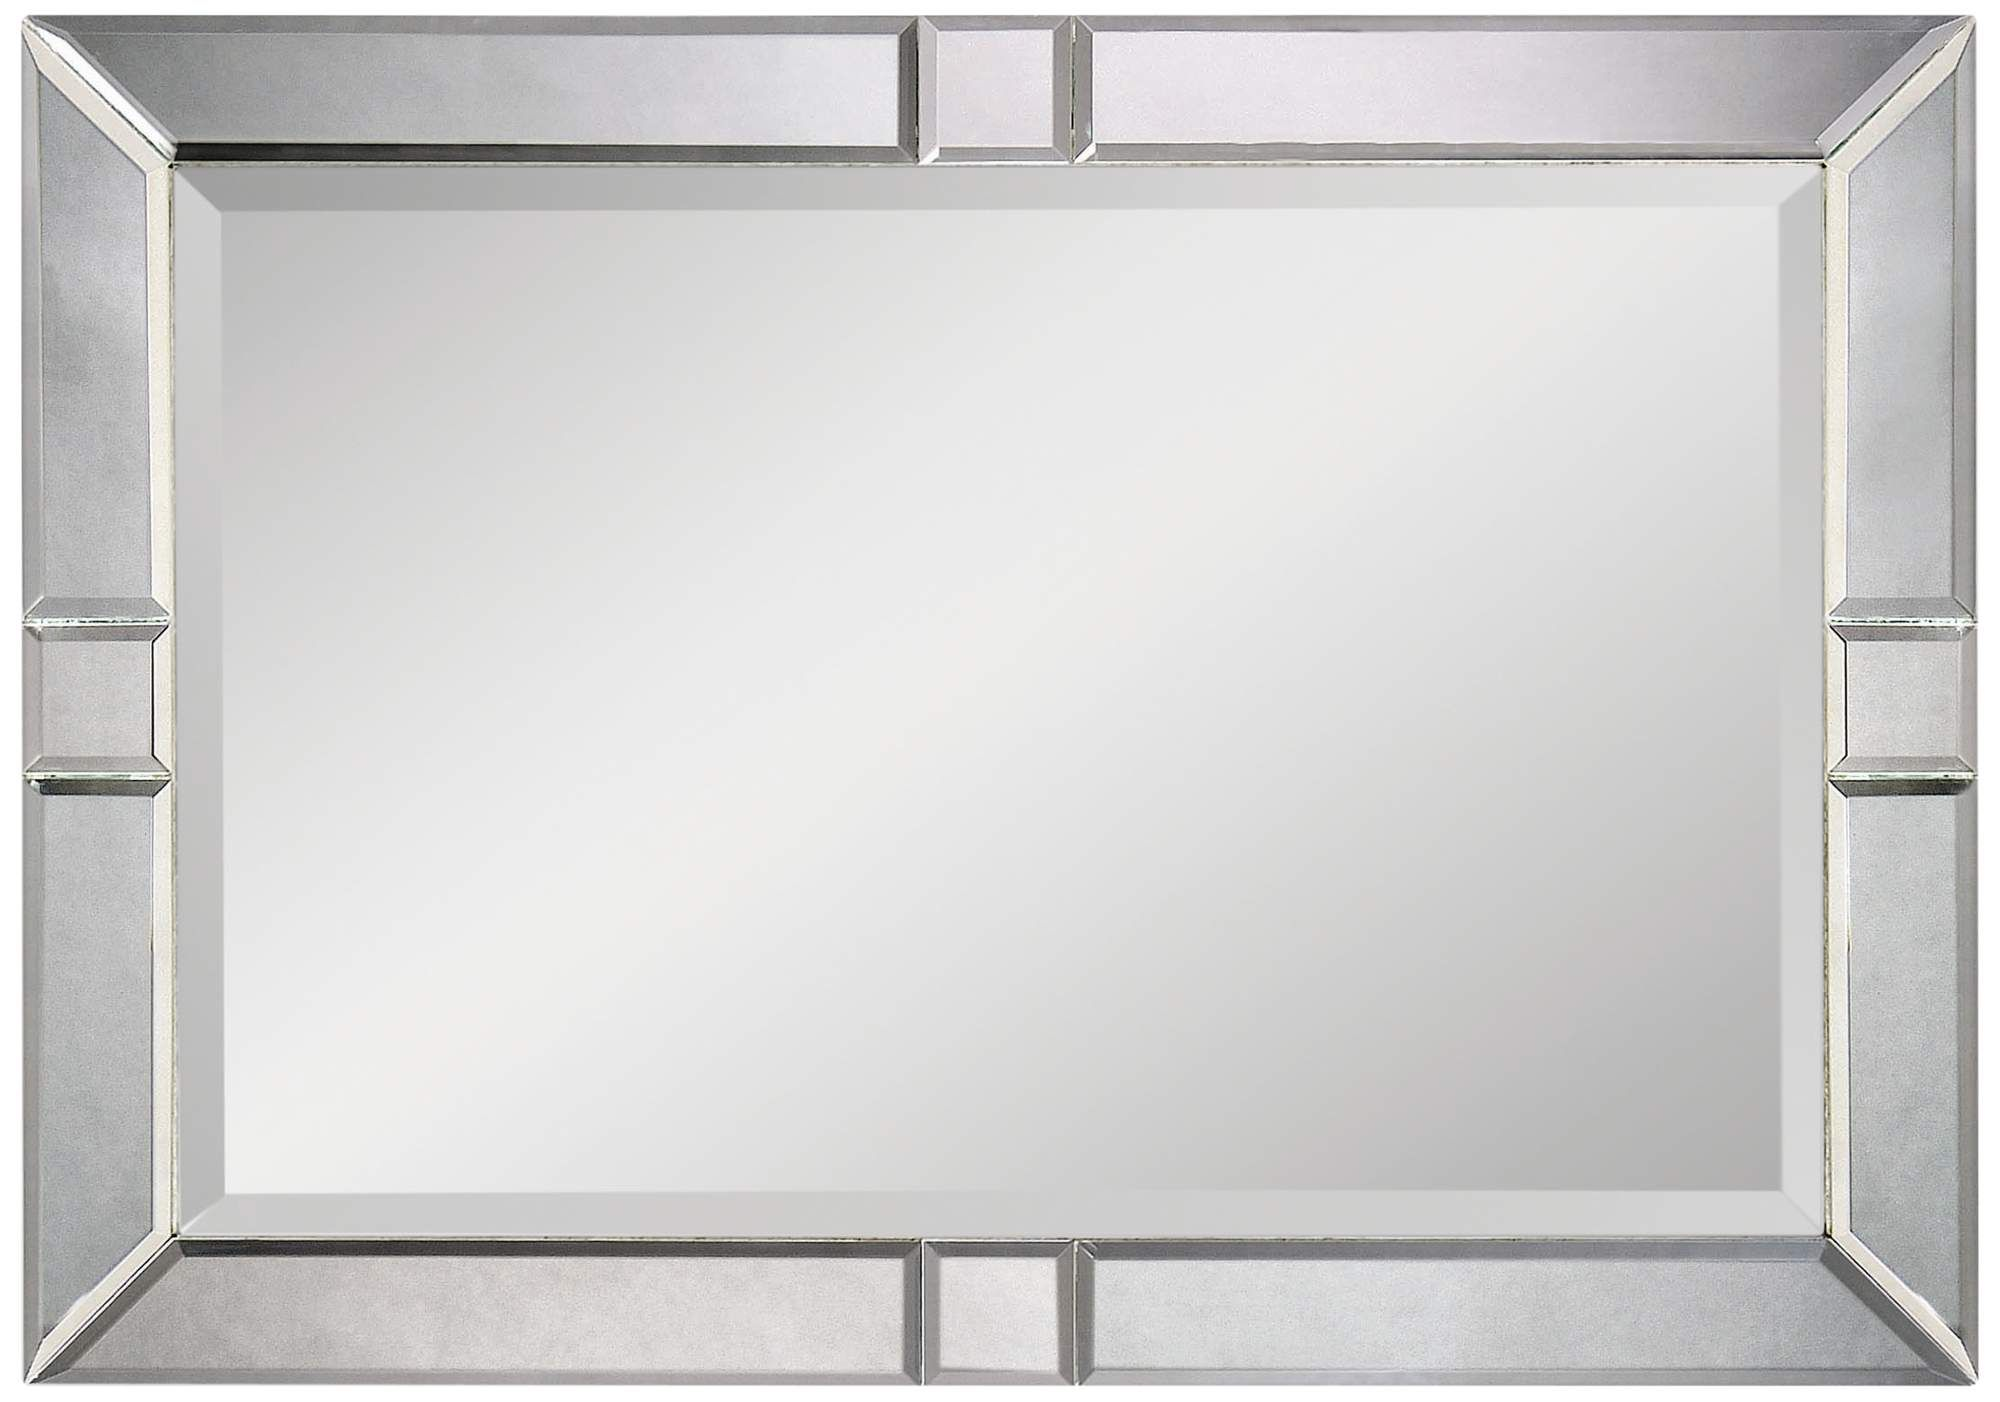 Barbarella Beveled Mirror 42 Inch X 30 Inch Oversized Wall Mirror